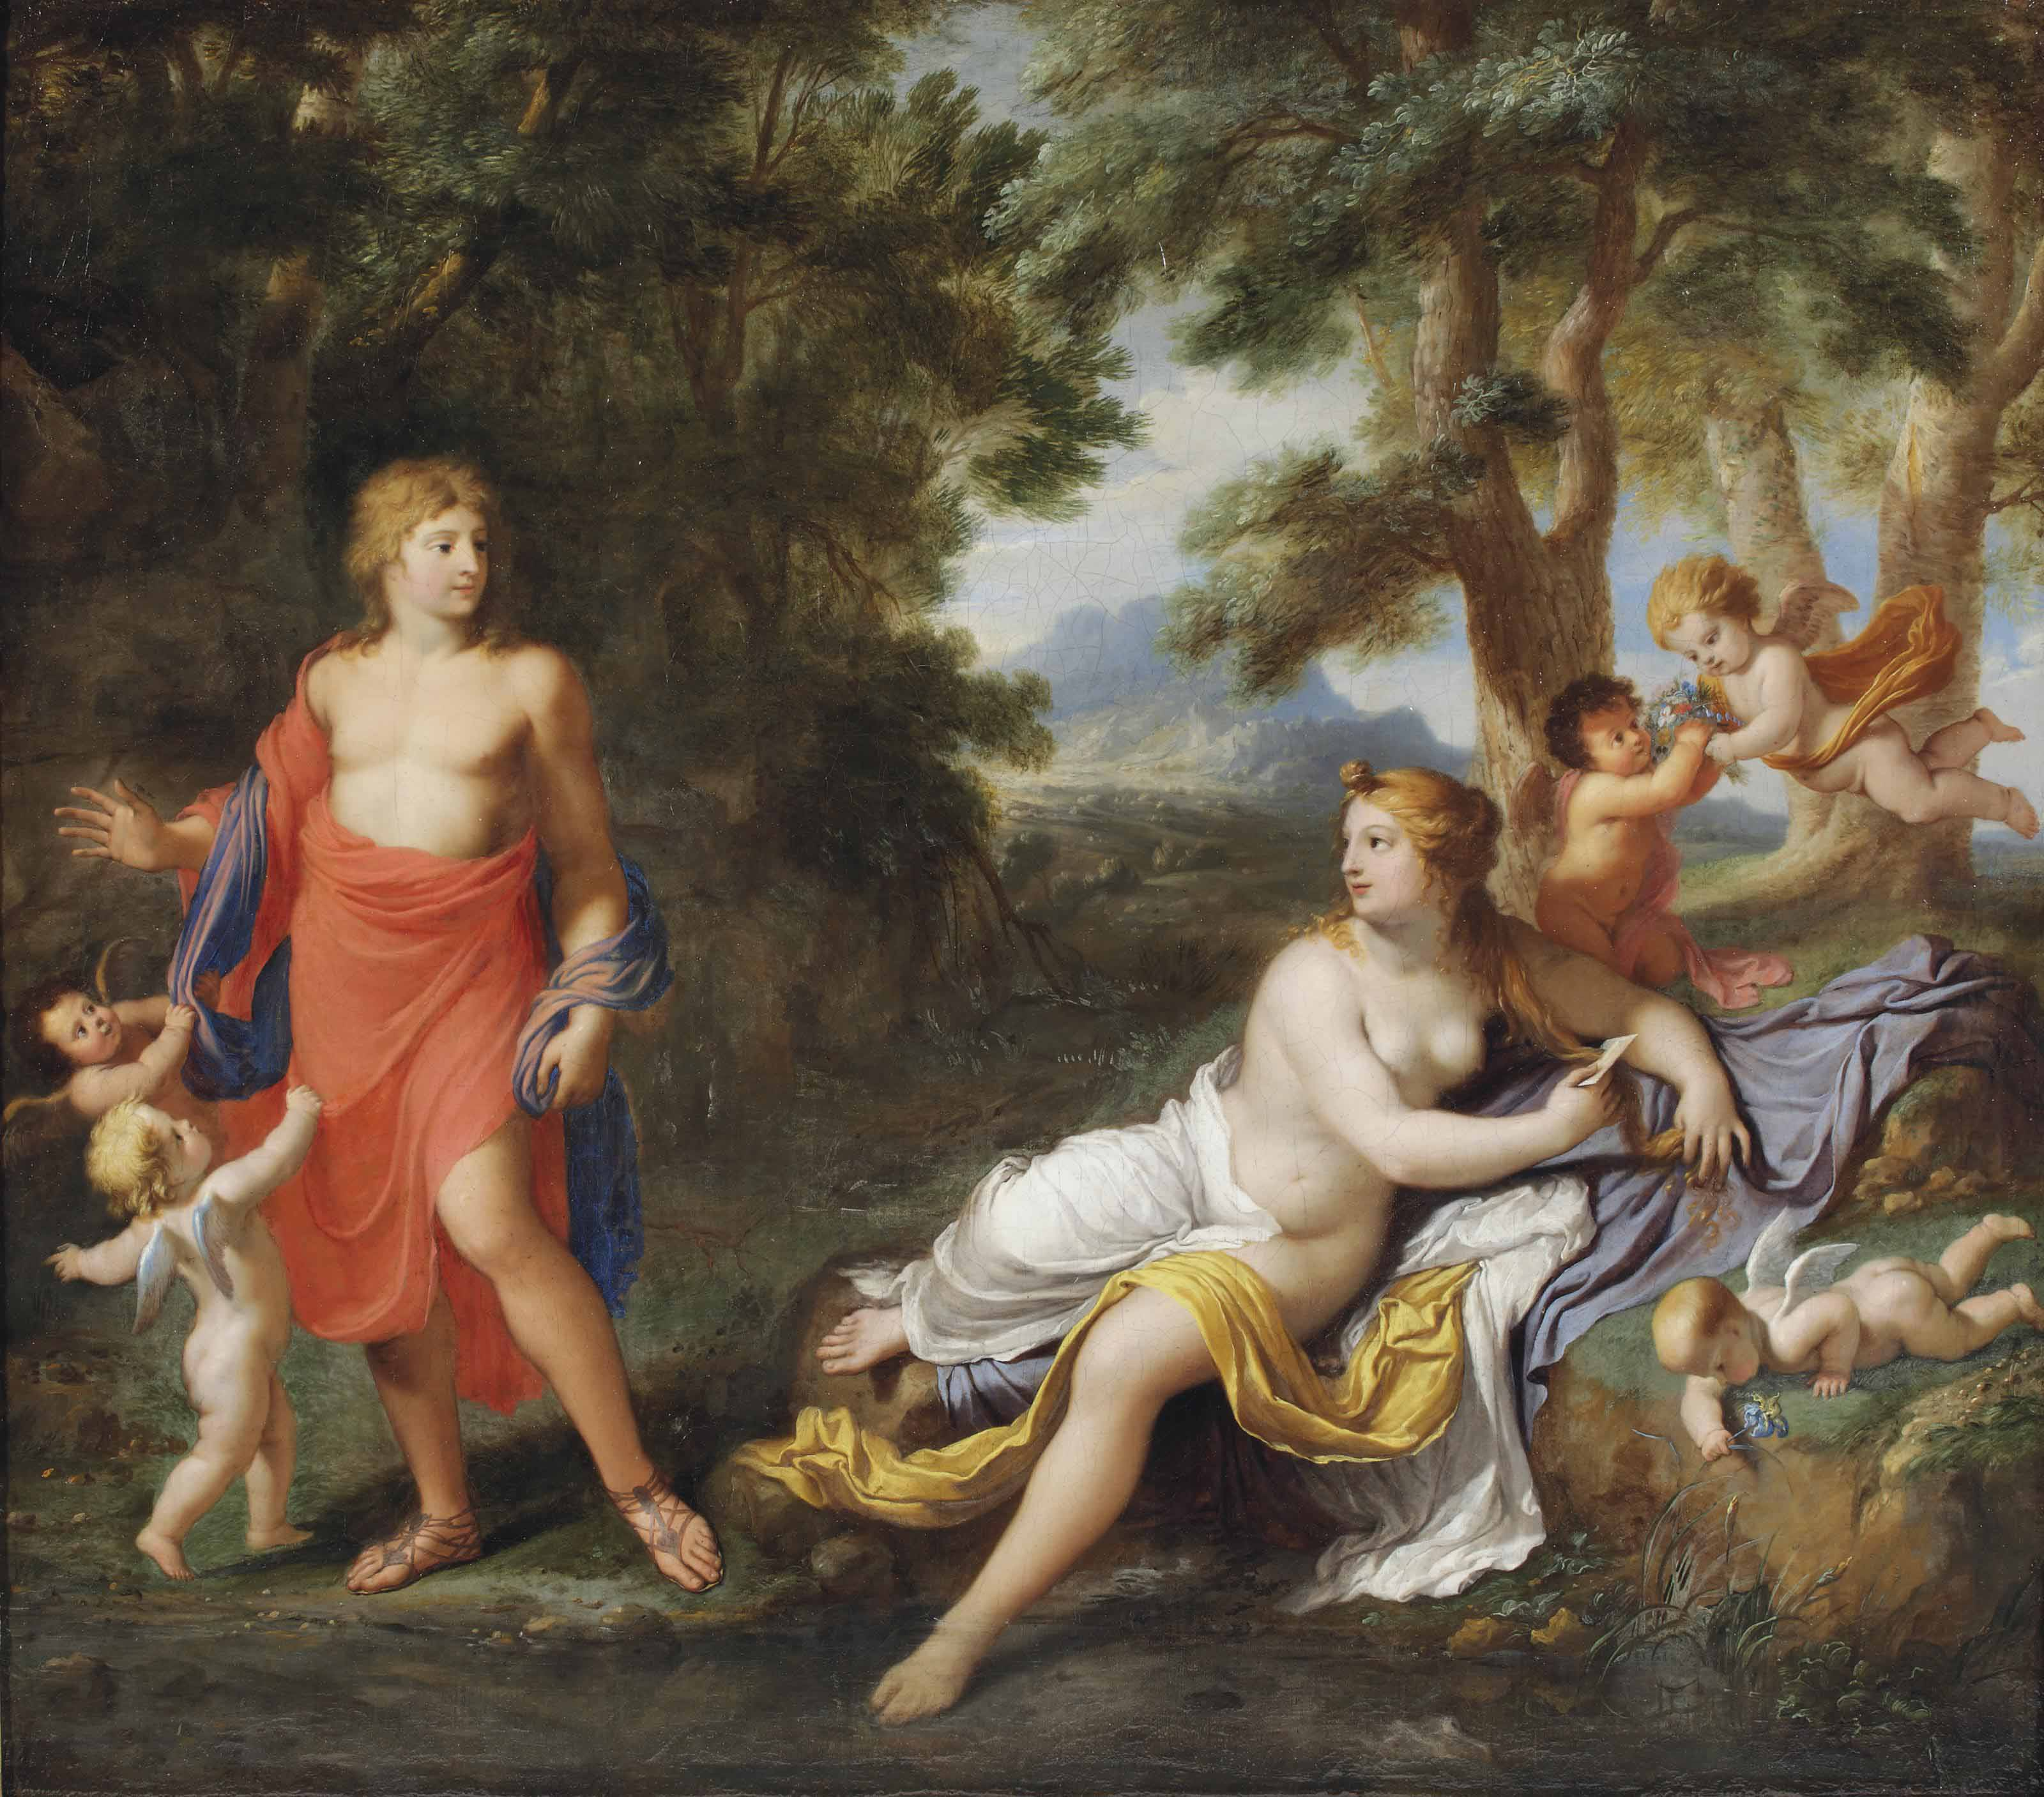 A wooded, mountainous landscape with Venus and Adonis by a stream, surrounded by putti